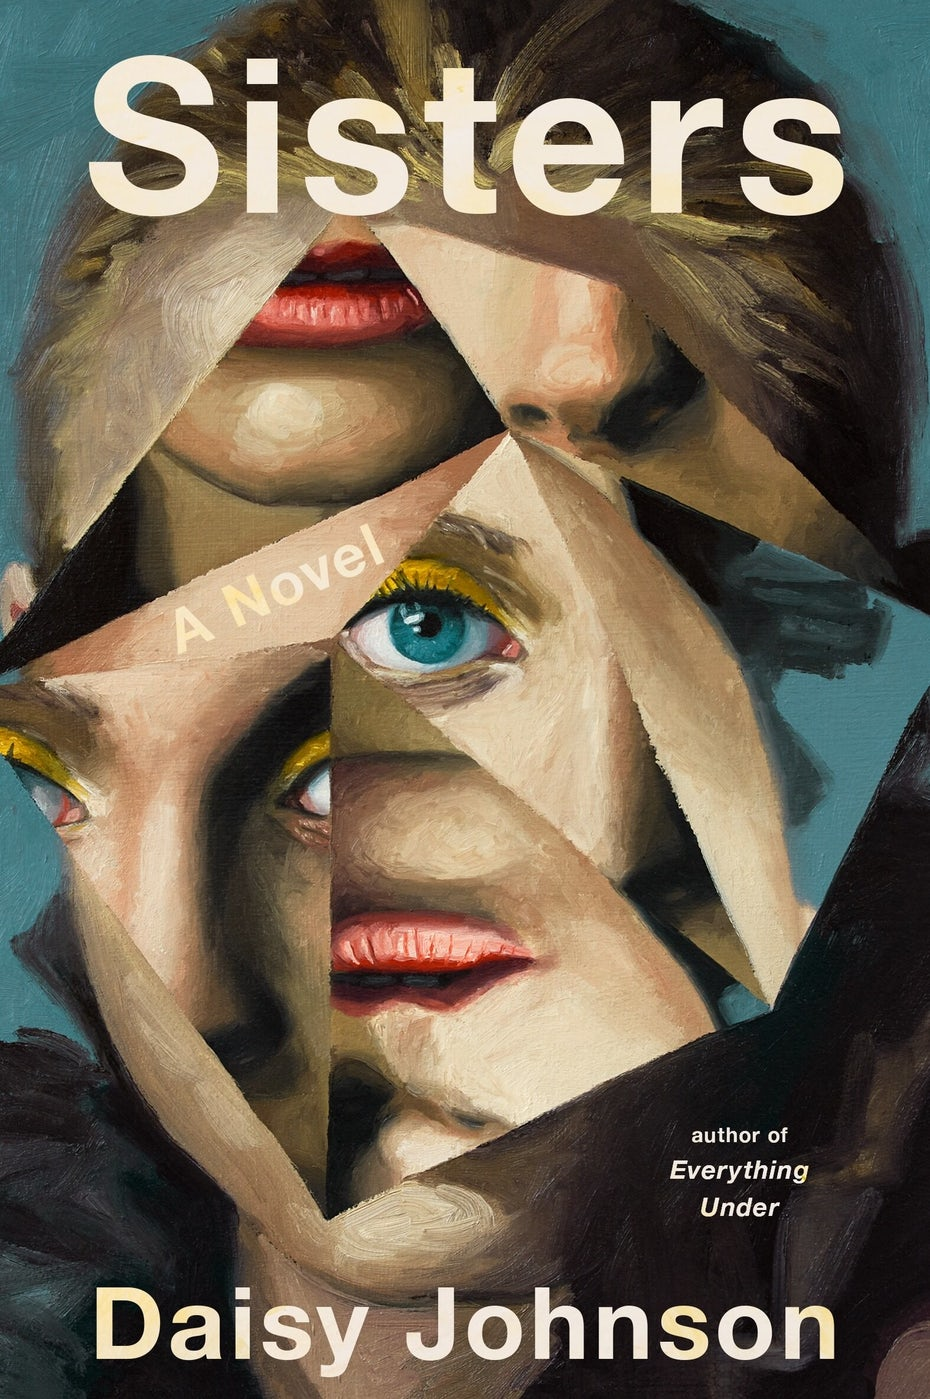 book cover showing a woman's face in mirror shards